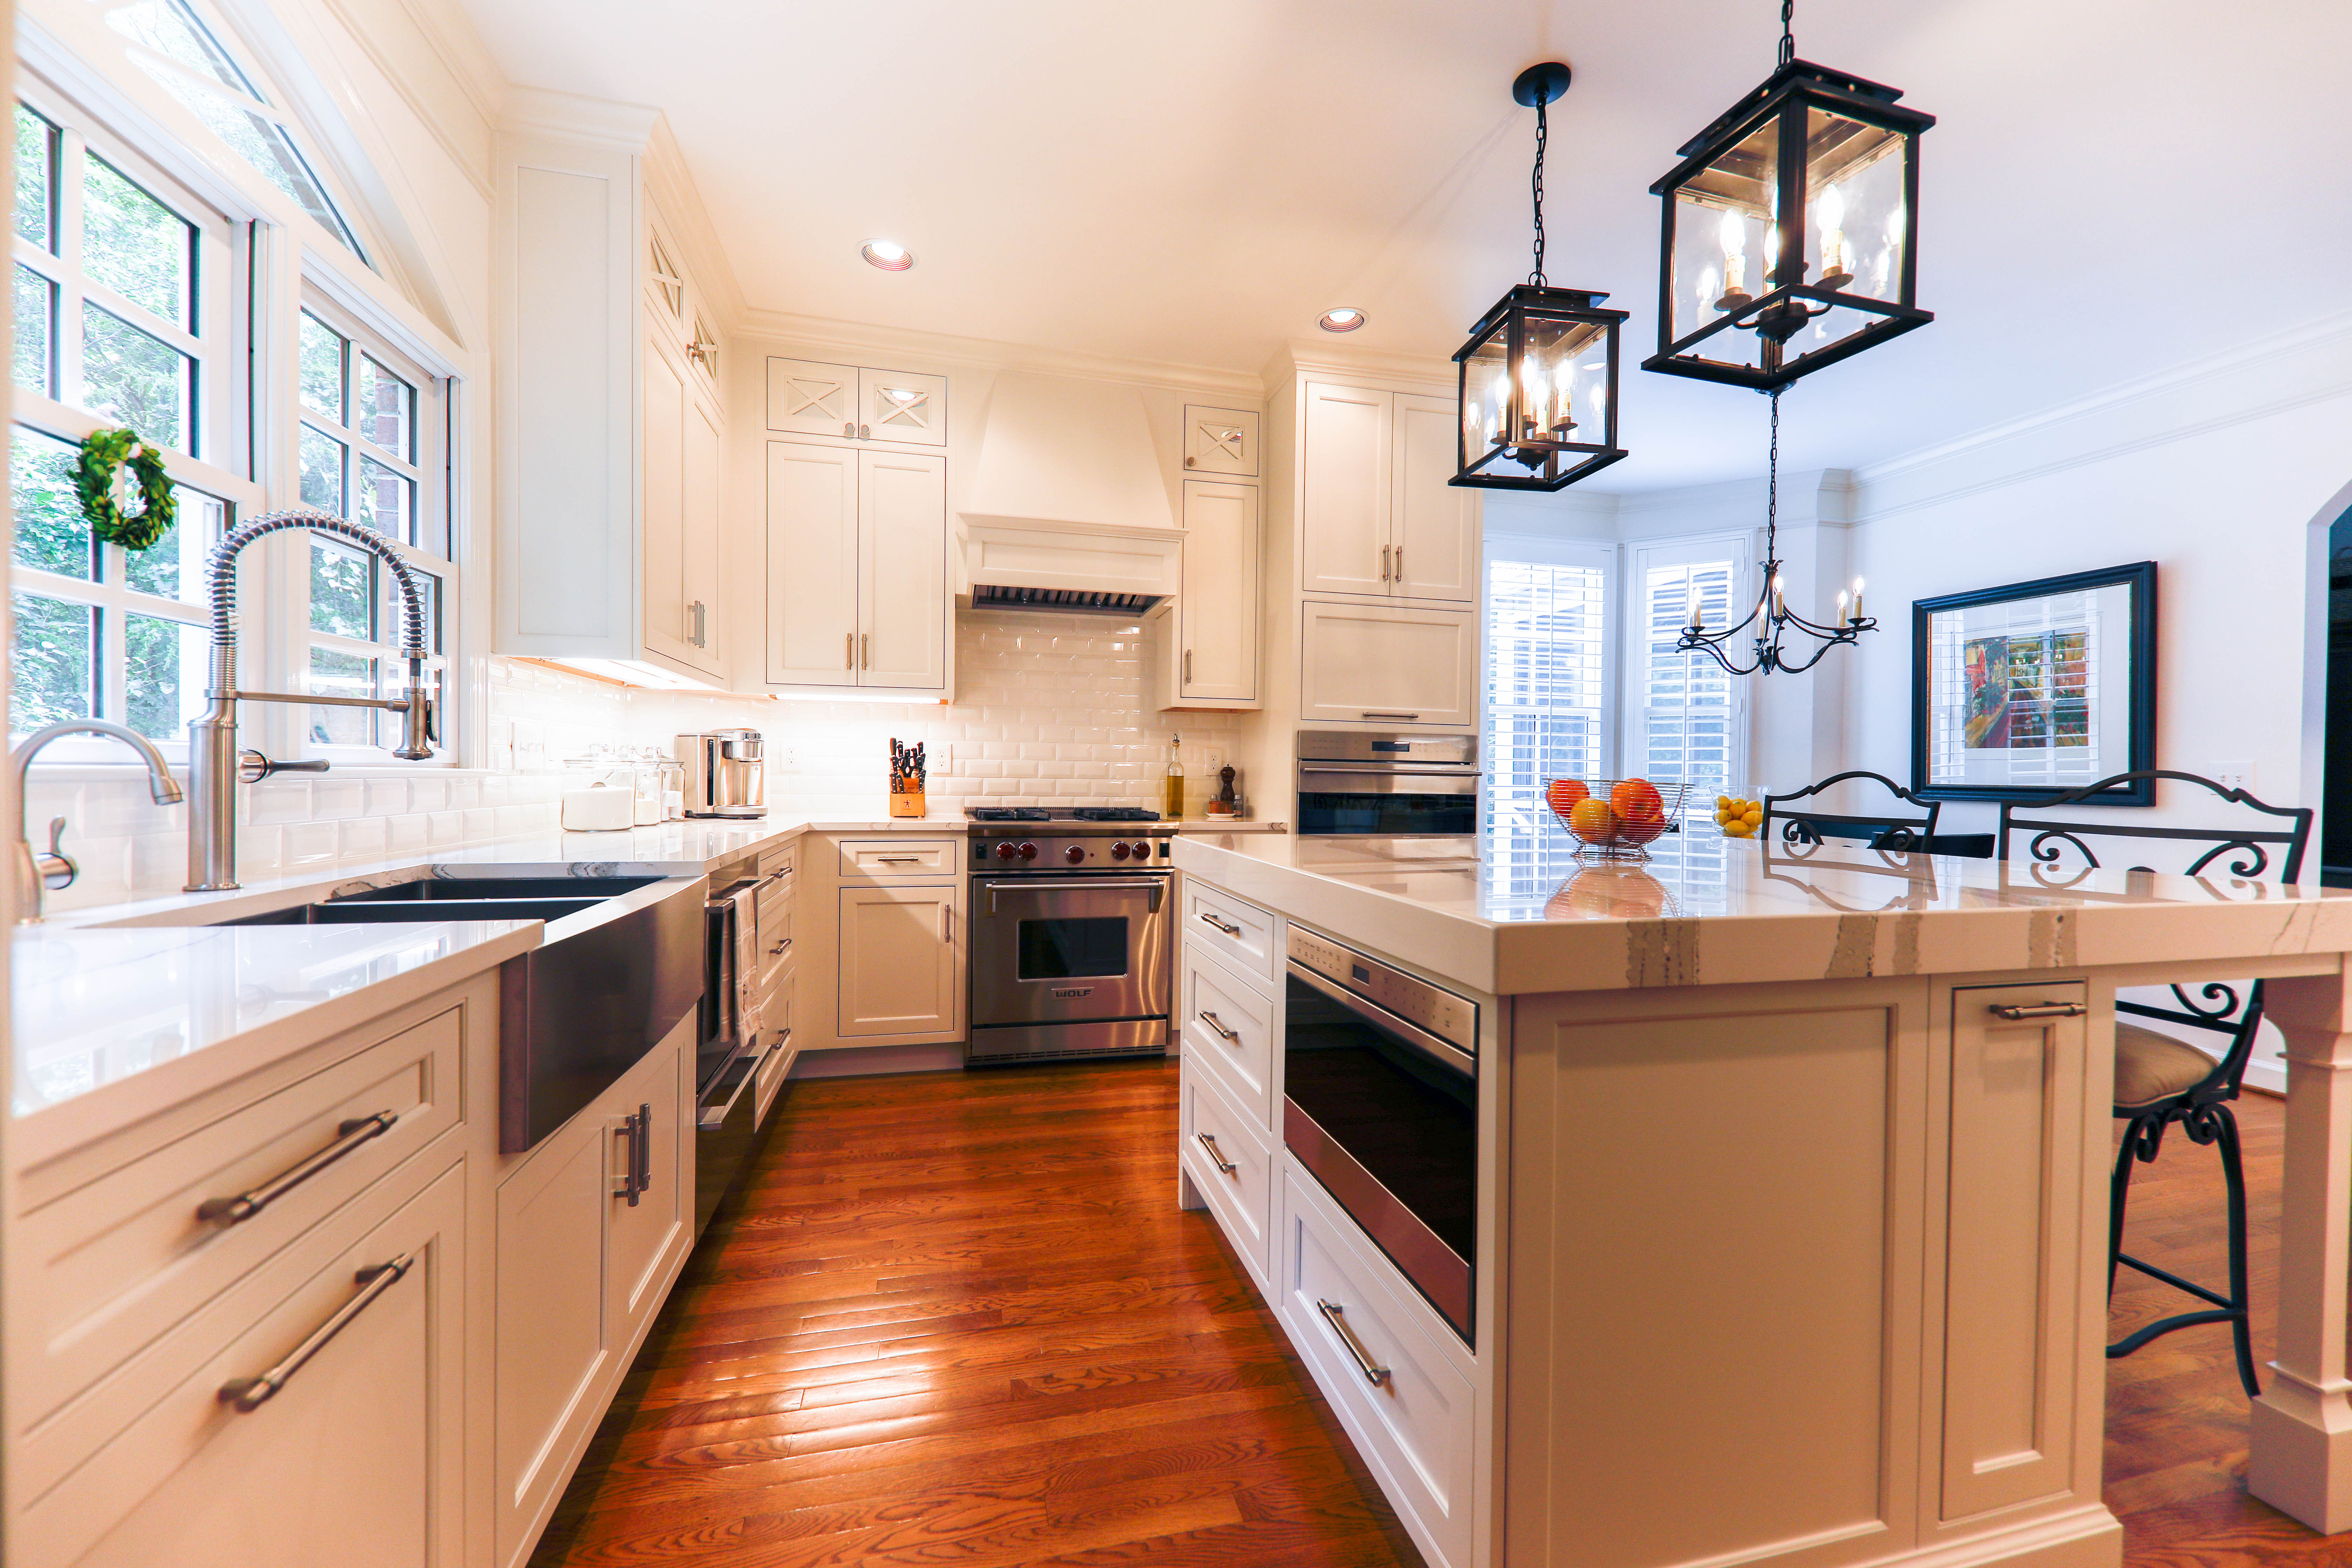 Kitchen Cabinets Costs Framed Vs Frameless Pros Amp Cons